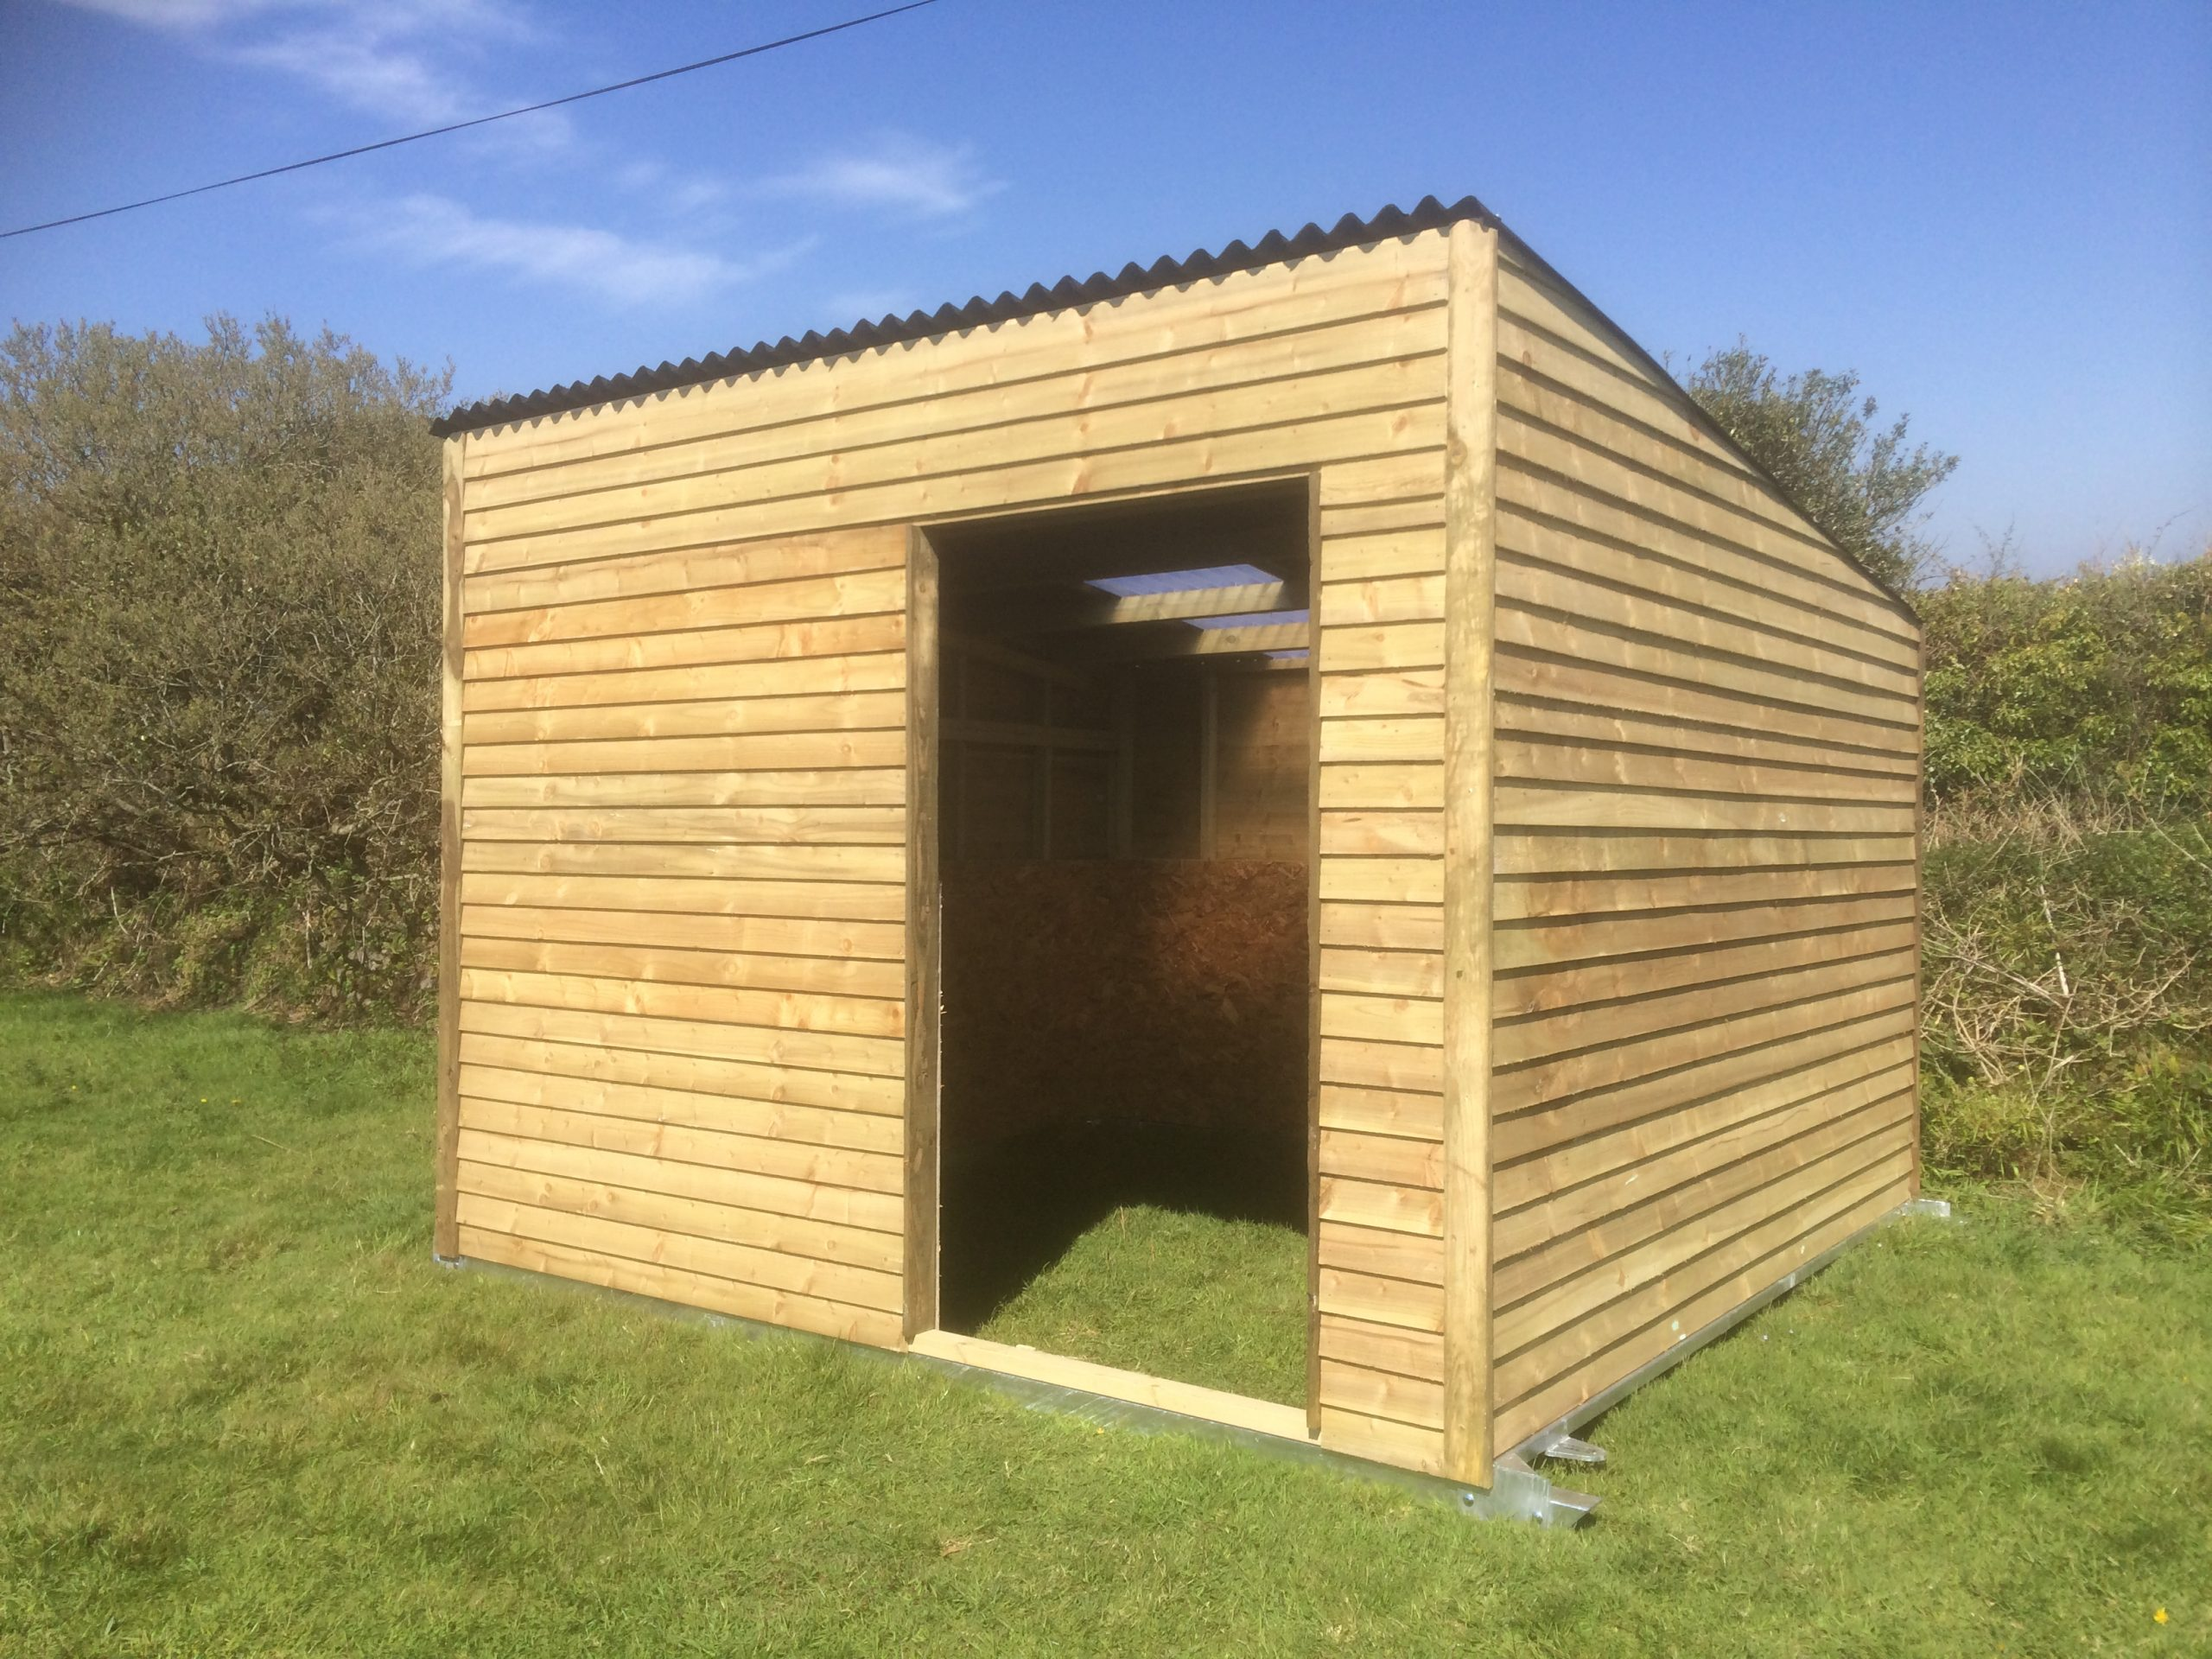 12ft x 12 ft Field Shelter